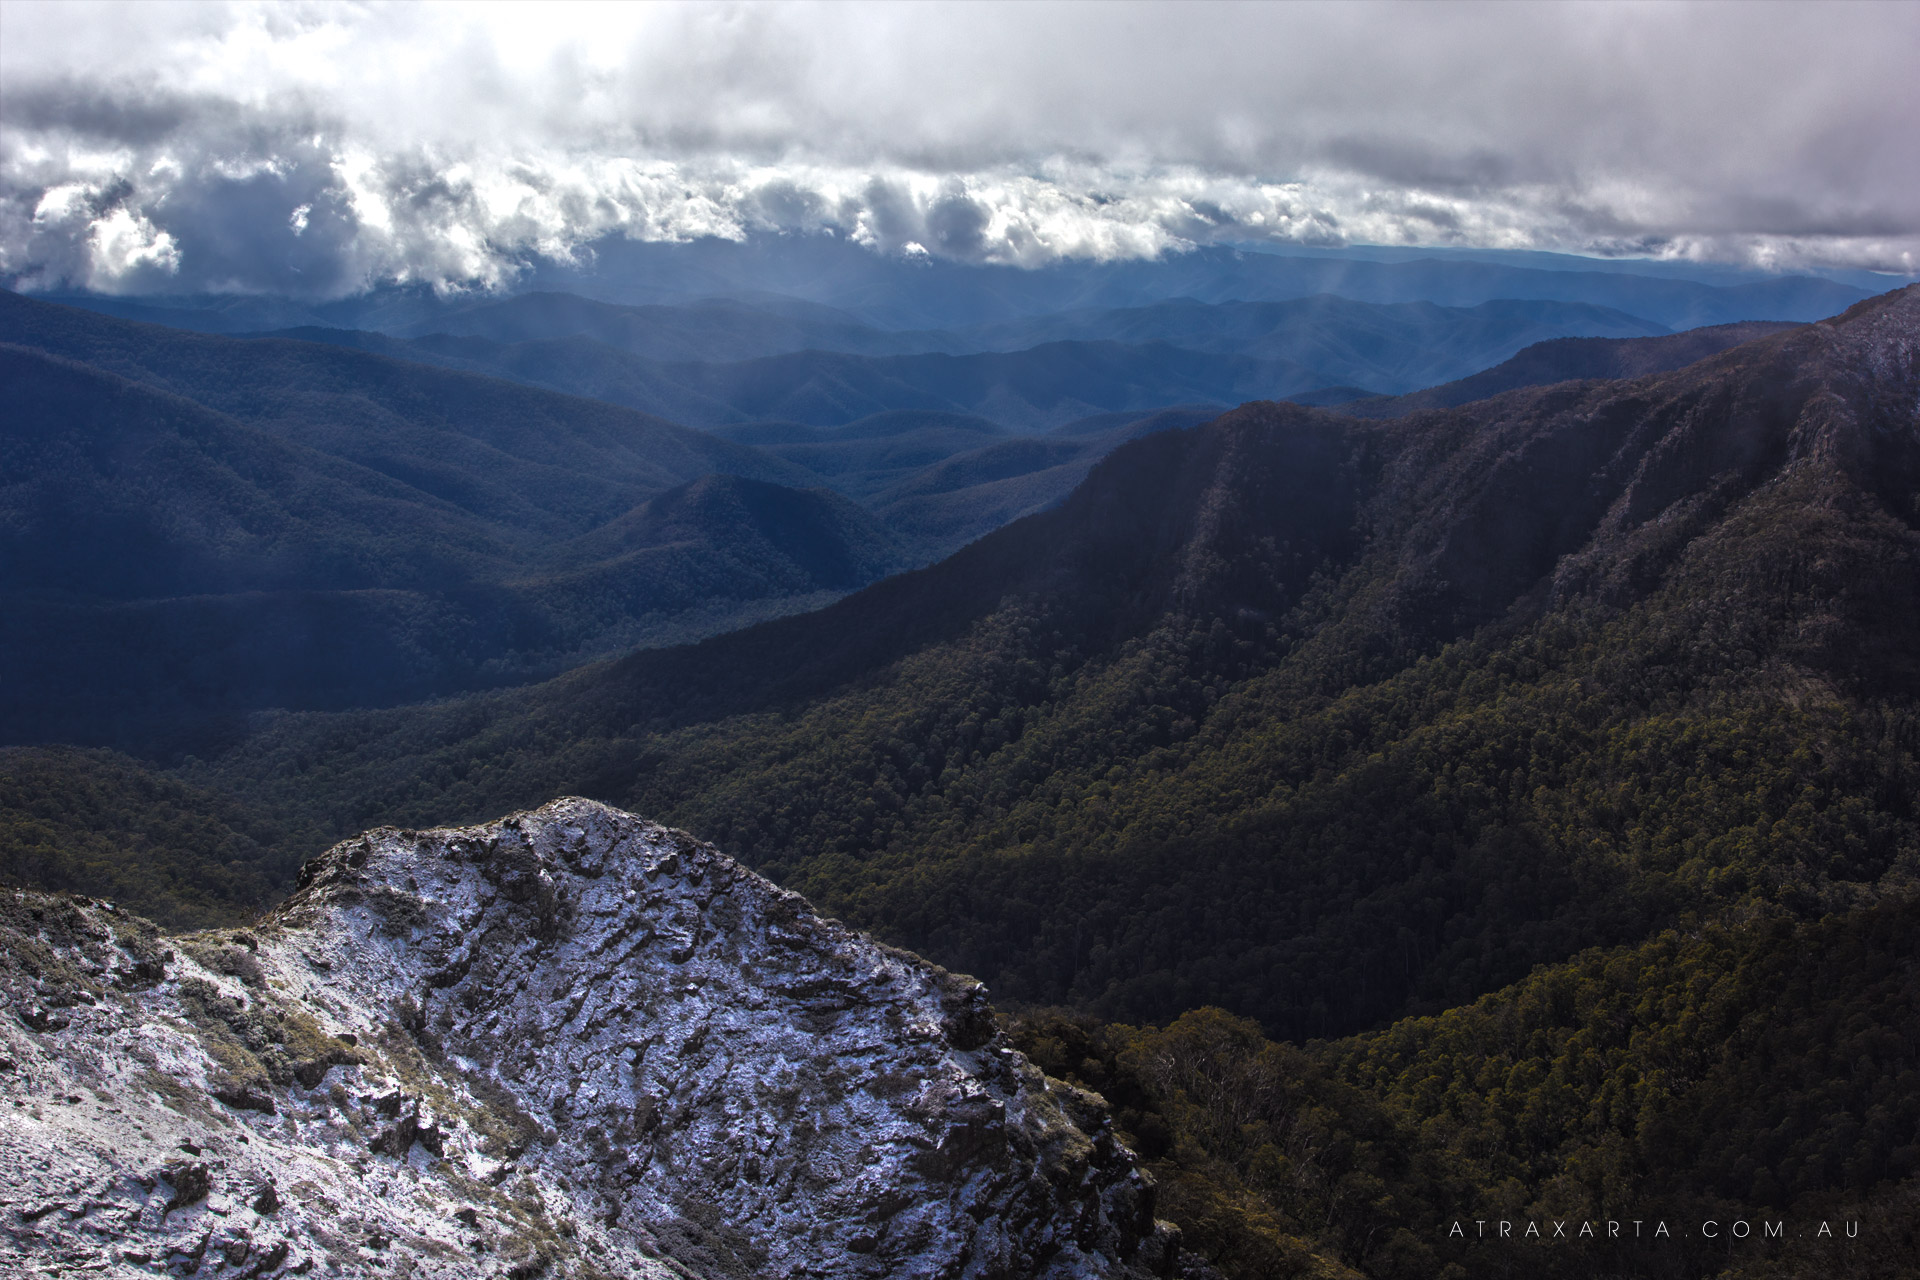 Snow on the Cross Cut Saw, Cross Cut Saw, Alpine National Park, Victoria